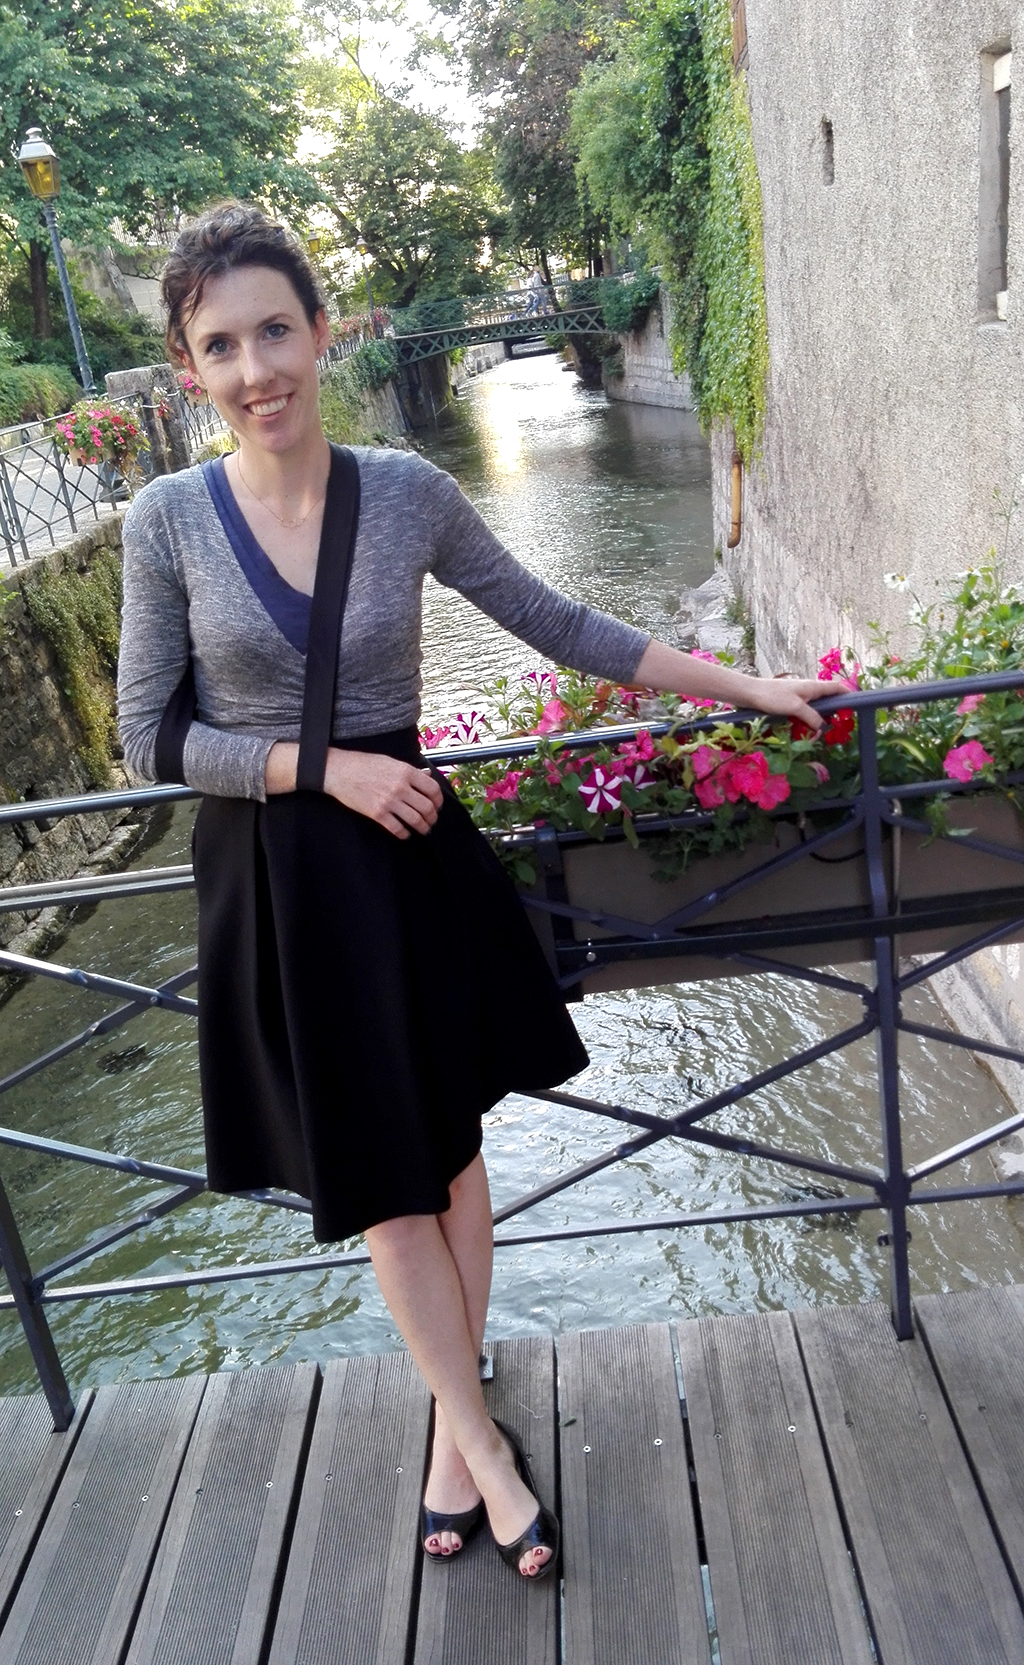 Wearing a sling in Annecy, France